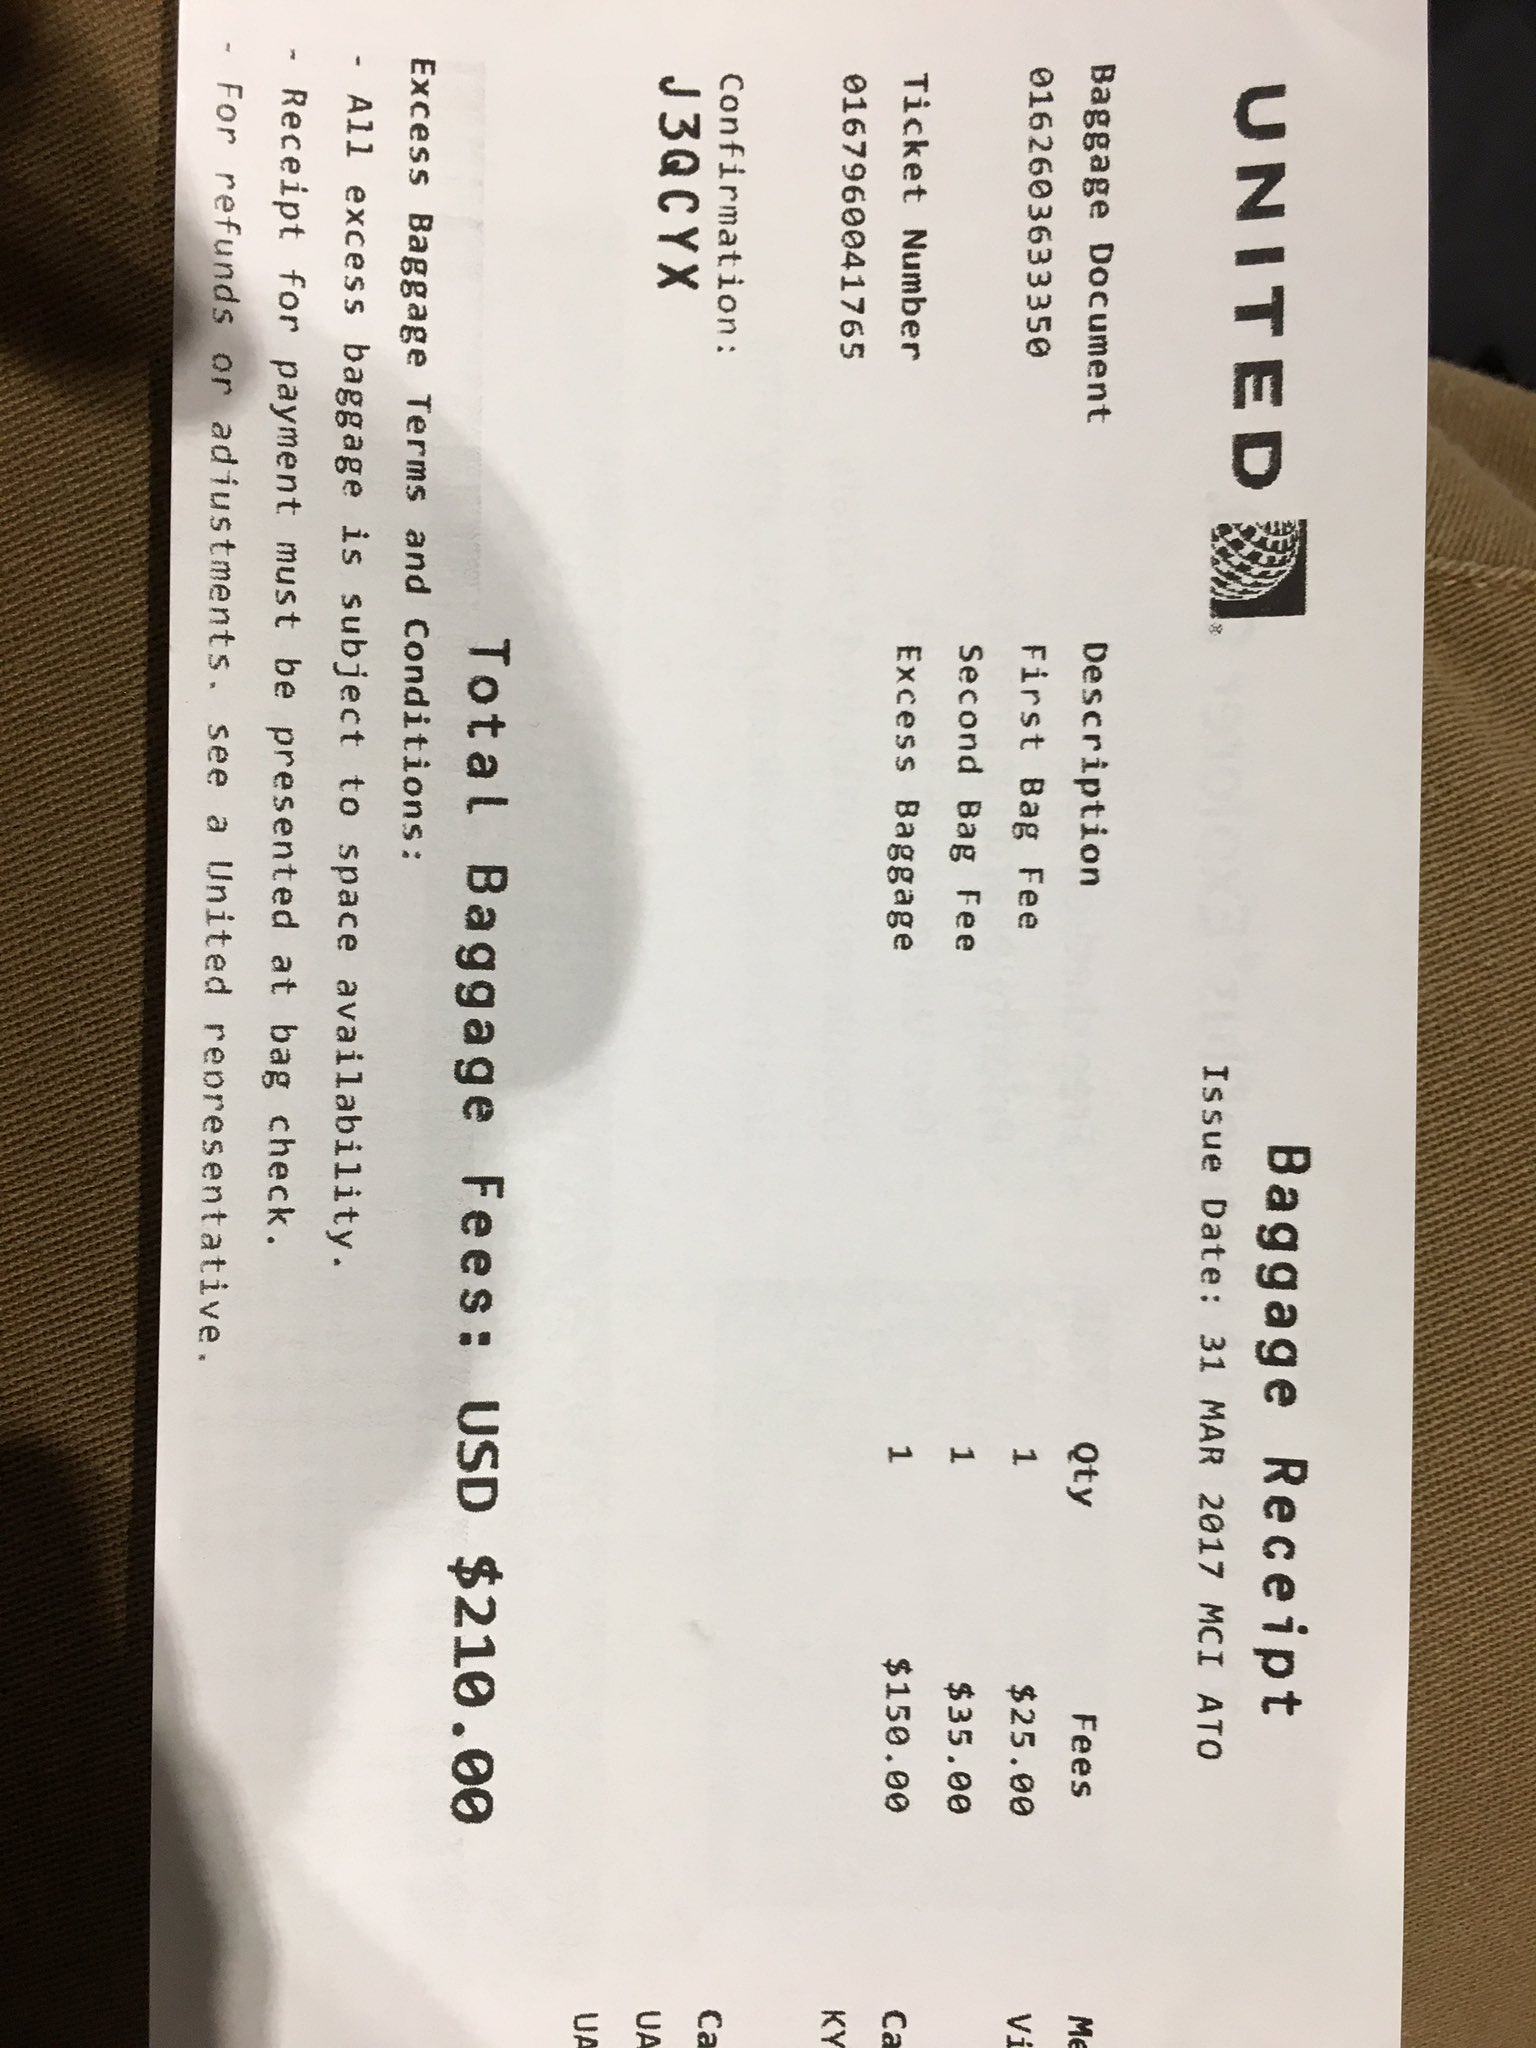 Kyle Beach On Twitter Well United Airlines Strikes Again Checked 2 Hockey Bags Of Gear With Sticks Paid For The And An Extra 150